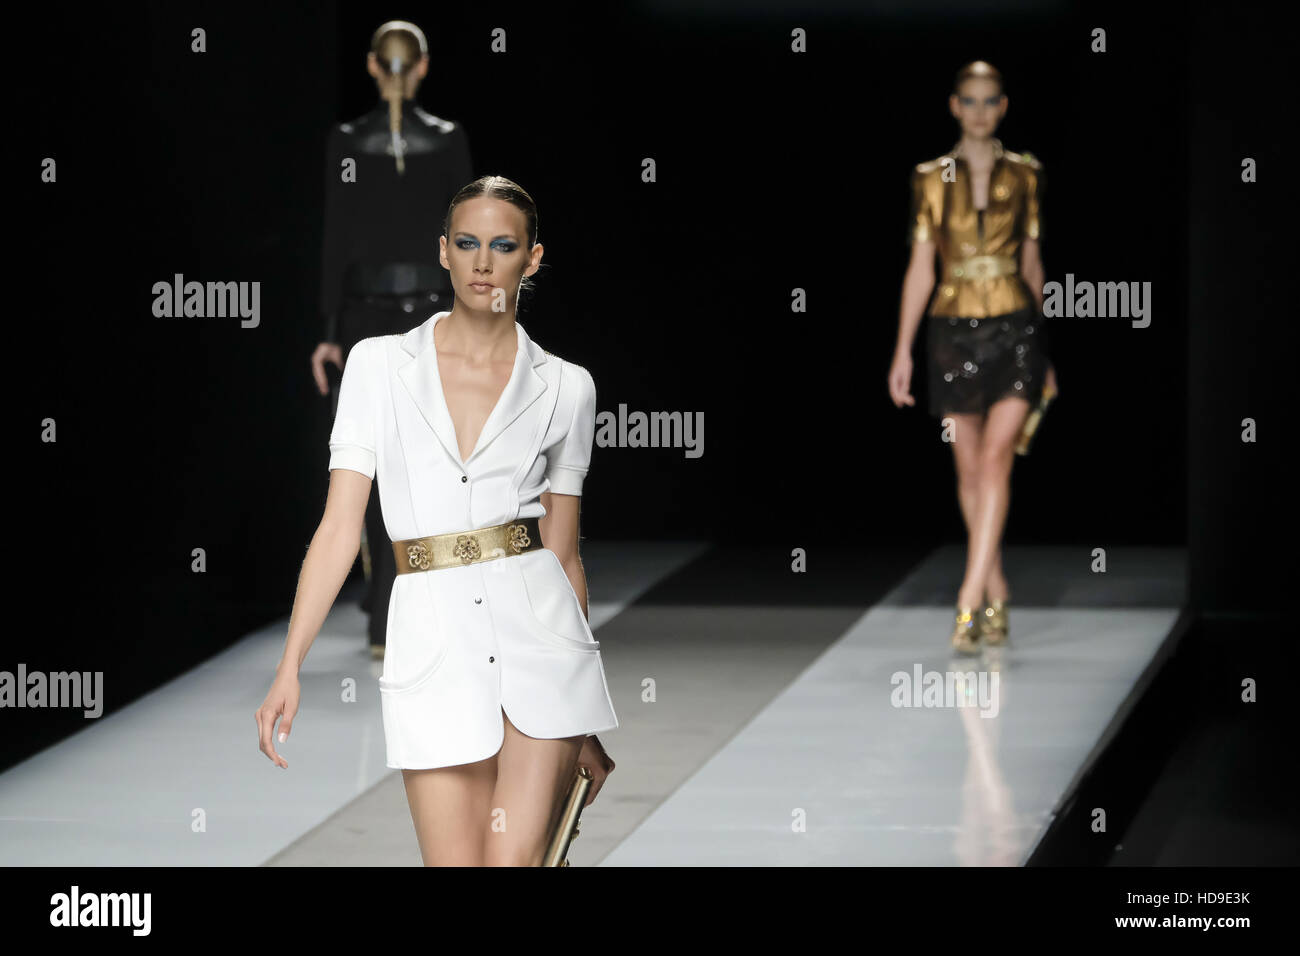 6685b420a9 Models on the catwalk at the Felipe Varela show during Mercedes-Benz  Fashion Week Madrid